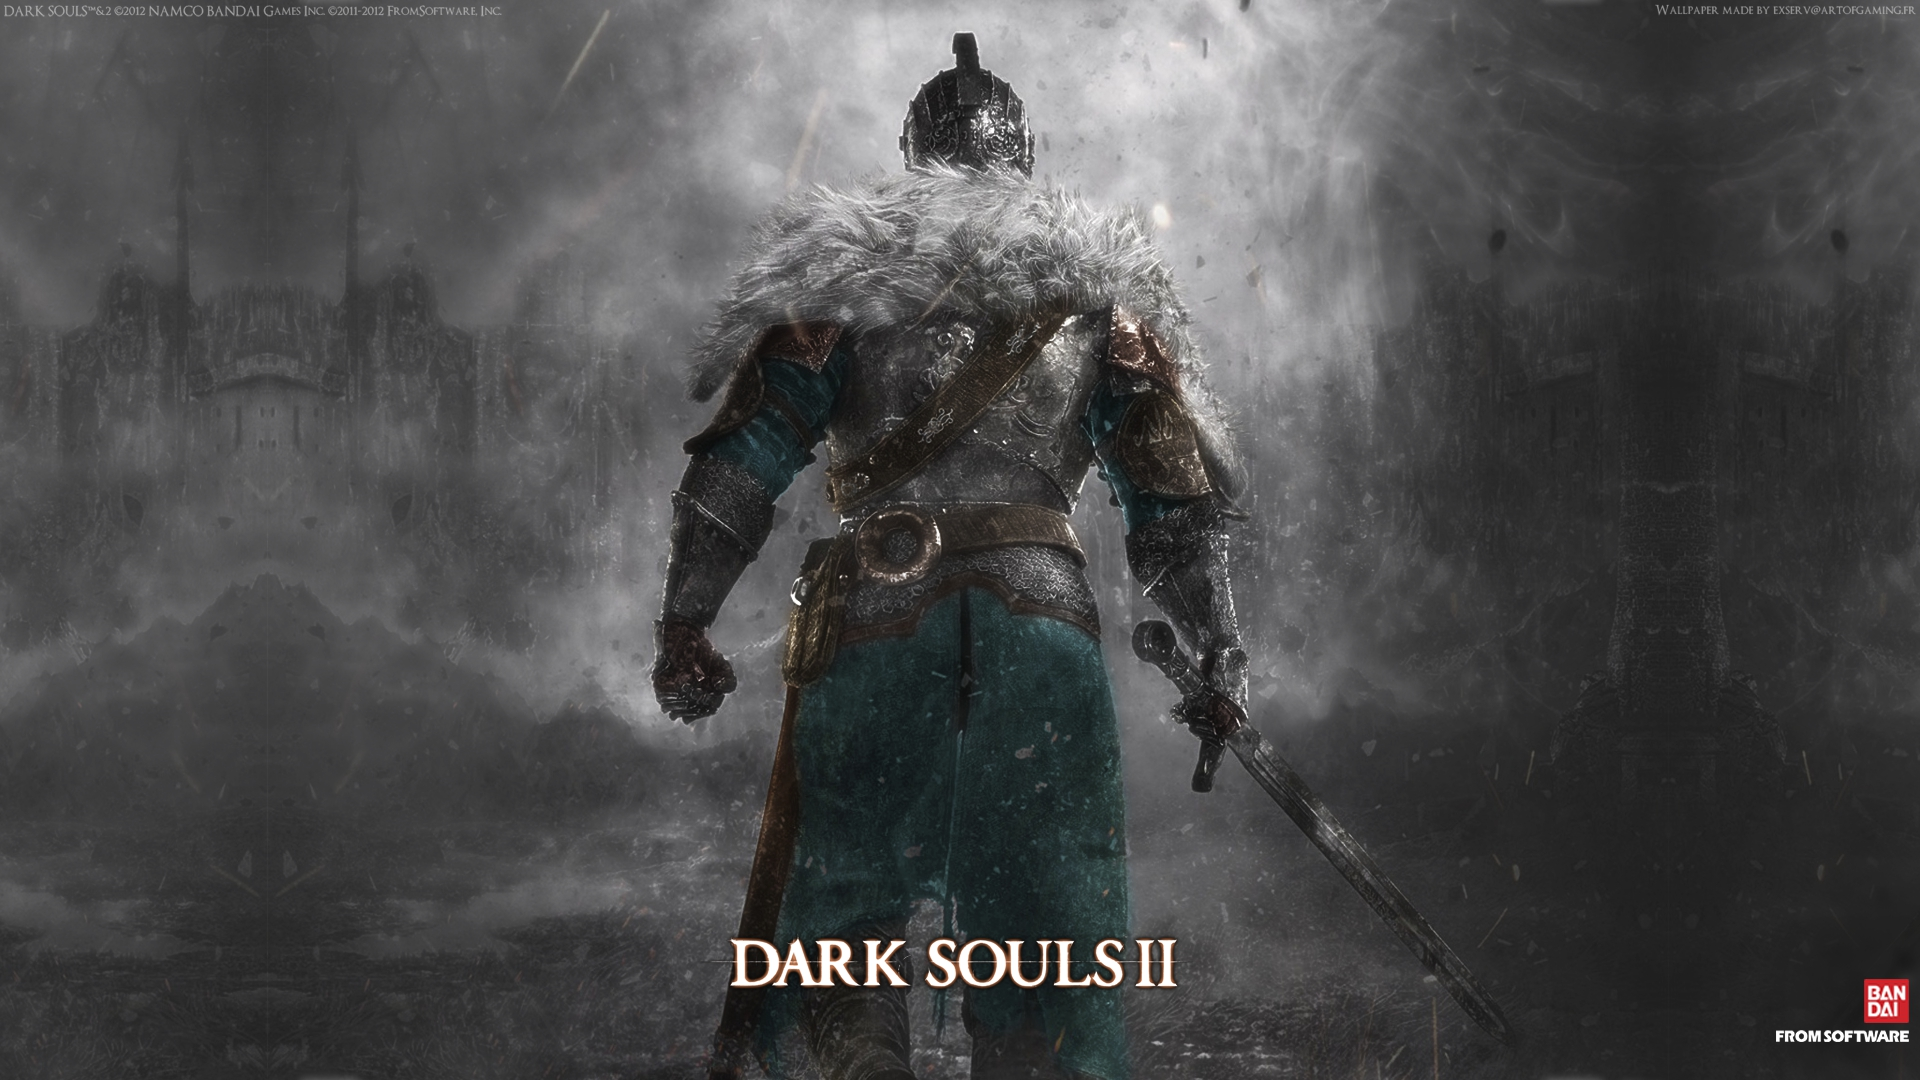 Dark Souls 2 Wallpaper